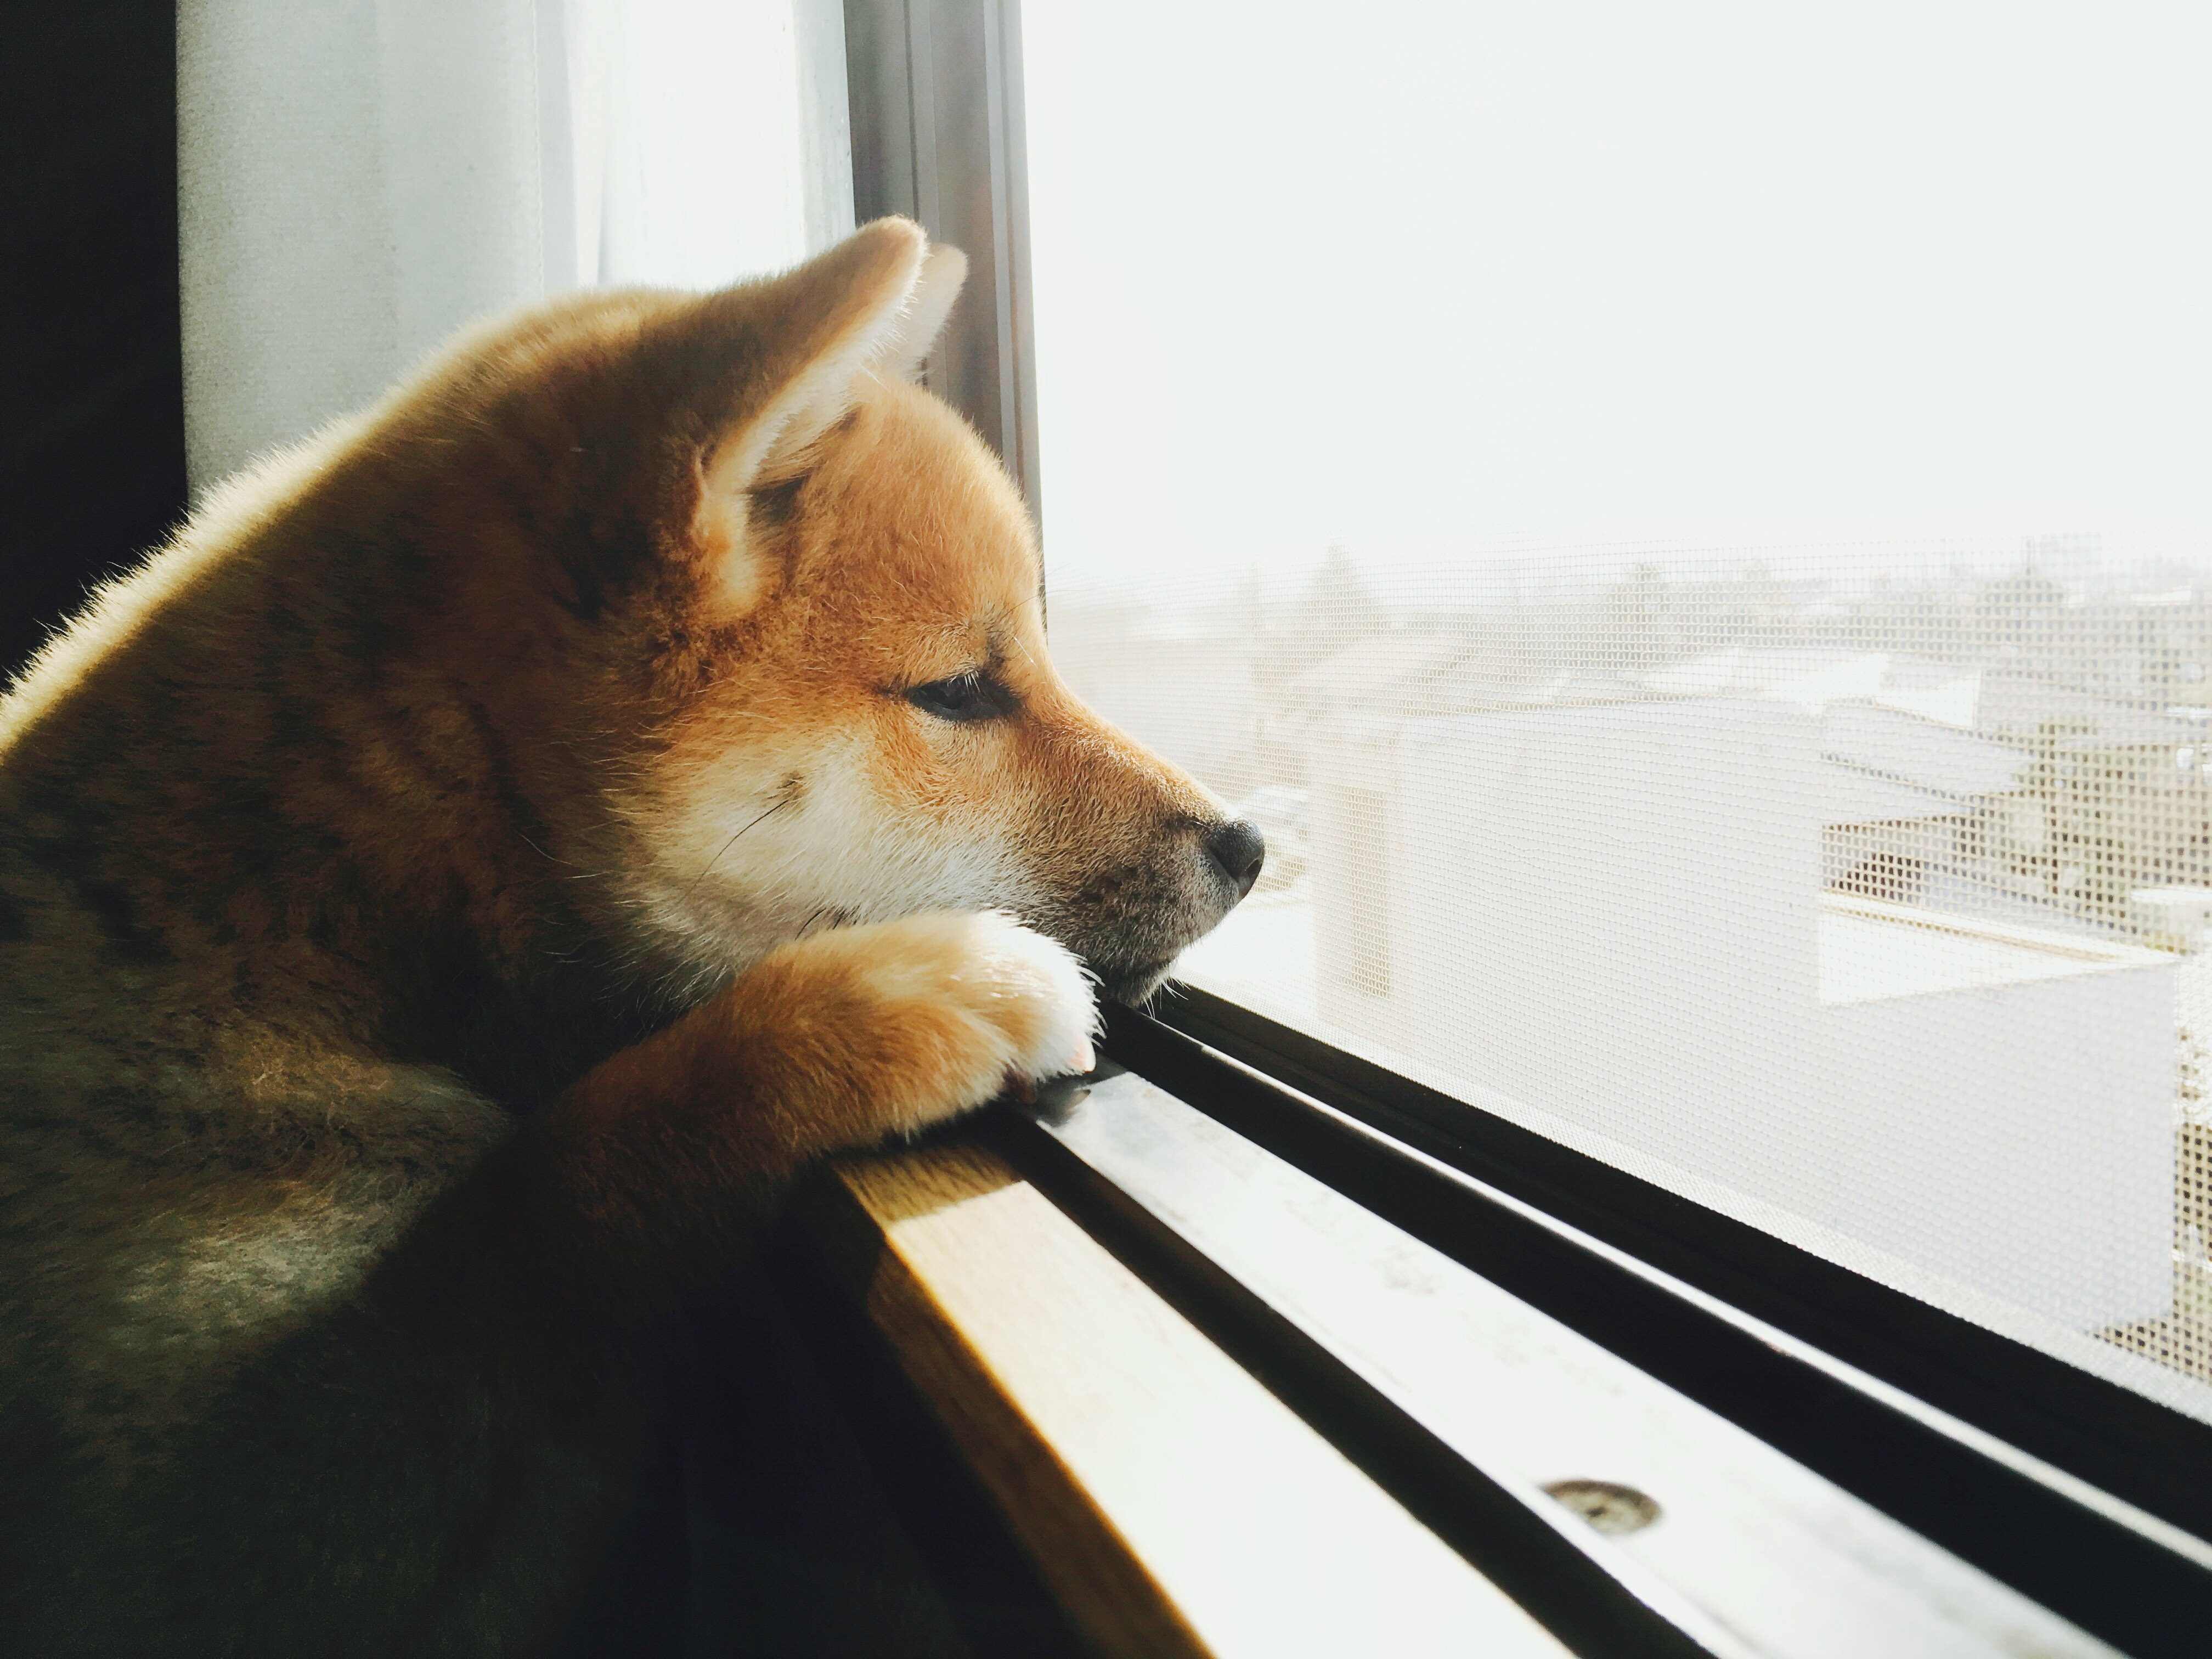 Shiba Inu Plunges Almost 40 Percent in Hours